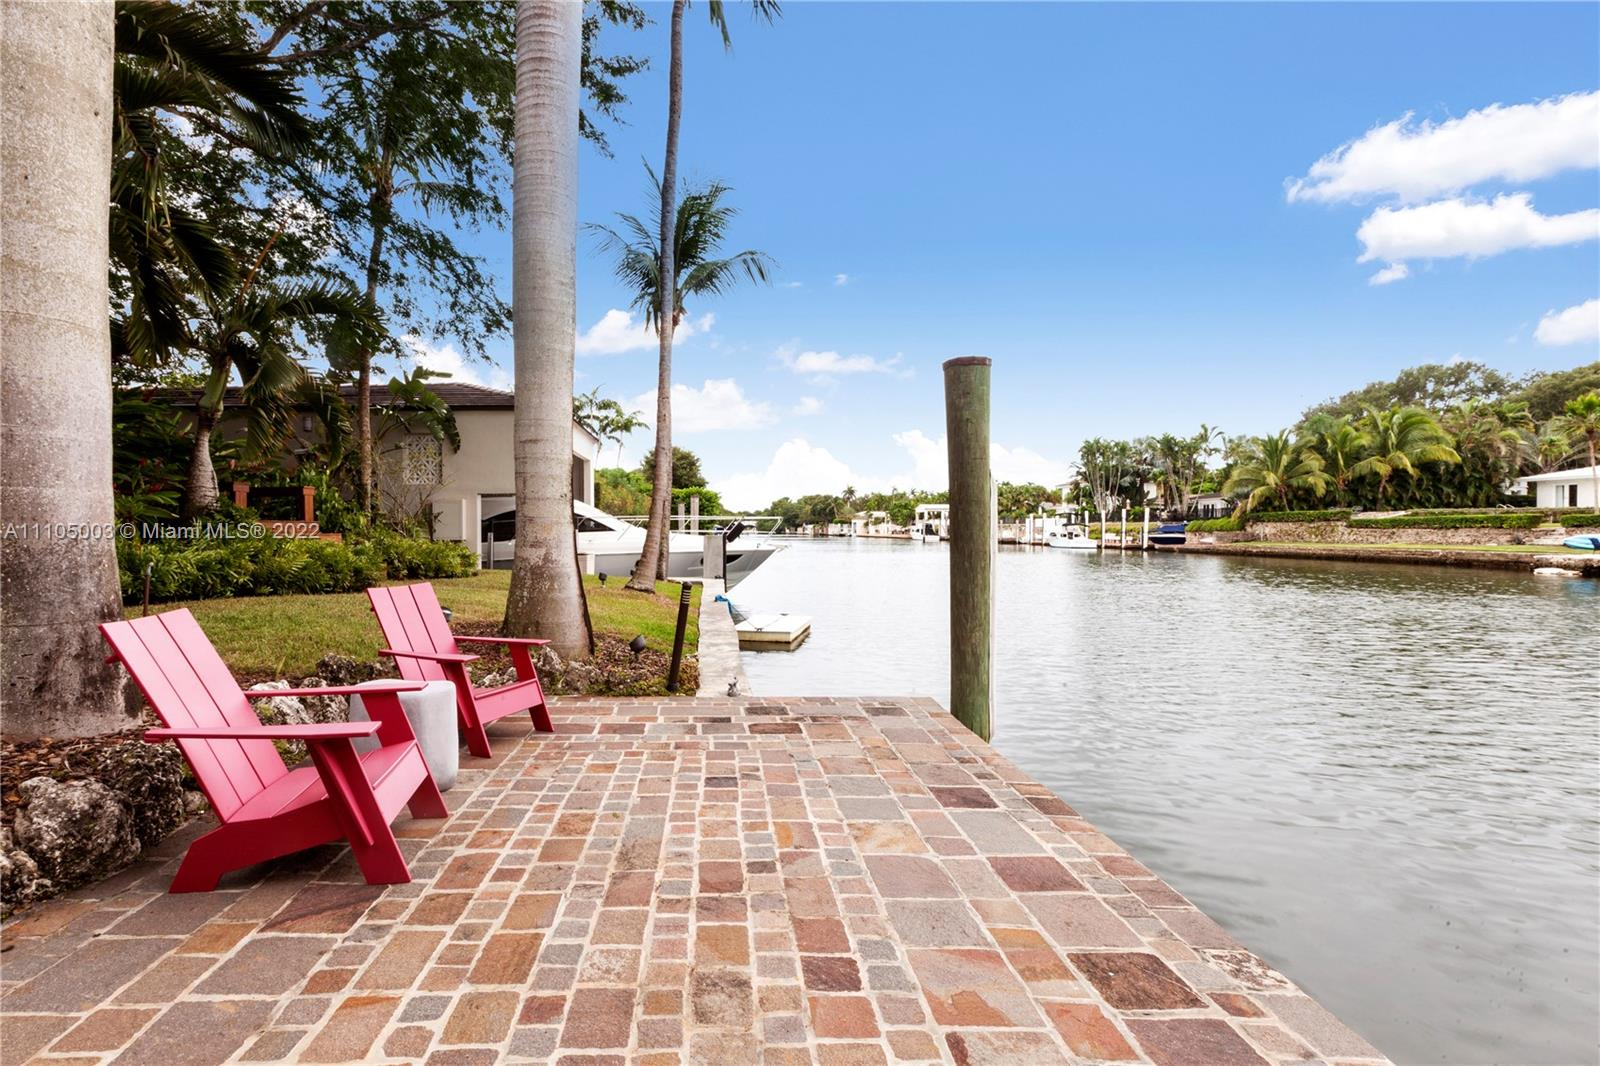 Extraordinary 137 ft. Waterfront family home in Coral Gables, perfect for boaters and water sport lovers, featuring a large Deck; Boat Slip and a unique Boathouse (aprox 500 sqft bonus area under AC media/gym room). This very spacious completely remodeled 5 BR 6.5BA and an office w/ private entrance is located on the widest part of the protected waterways east of US-1 on a gated 20,598 lot.  Meticulously designed to enjoy the incredible finishes throughout a very elegant floor plan. The abundance of light integrate both of the outside and inside living spaces. Close to shops, restaurants & top schools. Rare opportunity to own your private Resort and wake up every morning with gorgeous views of the water and lush gardens, and a chance to paddle boarding or jet skiing on your own backyard.